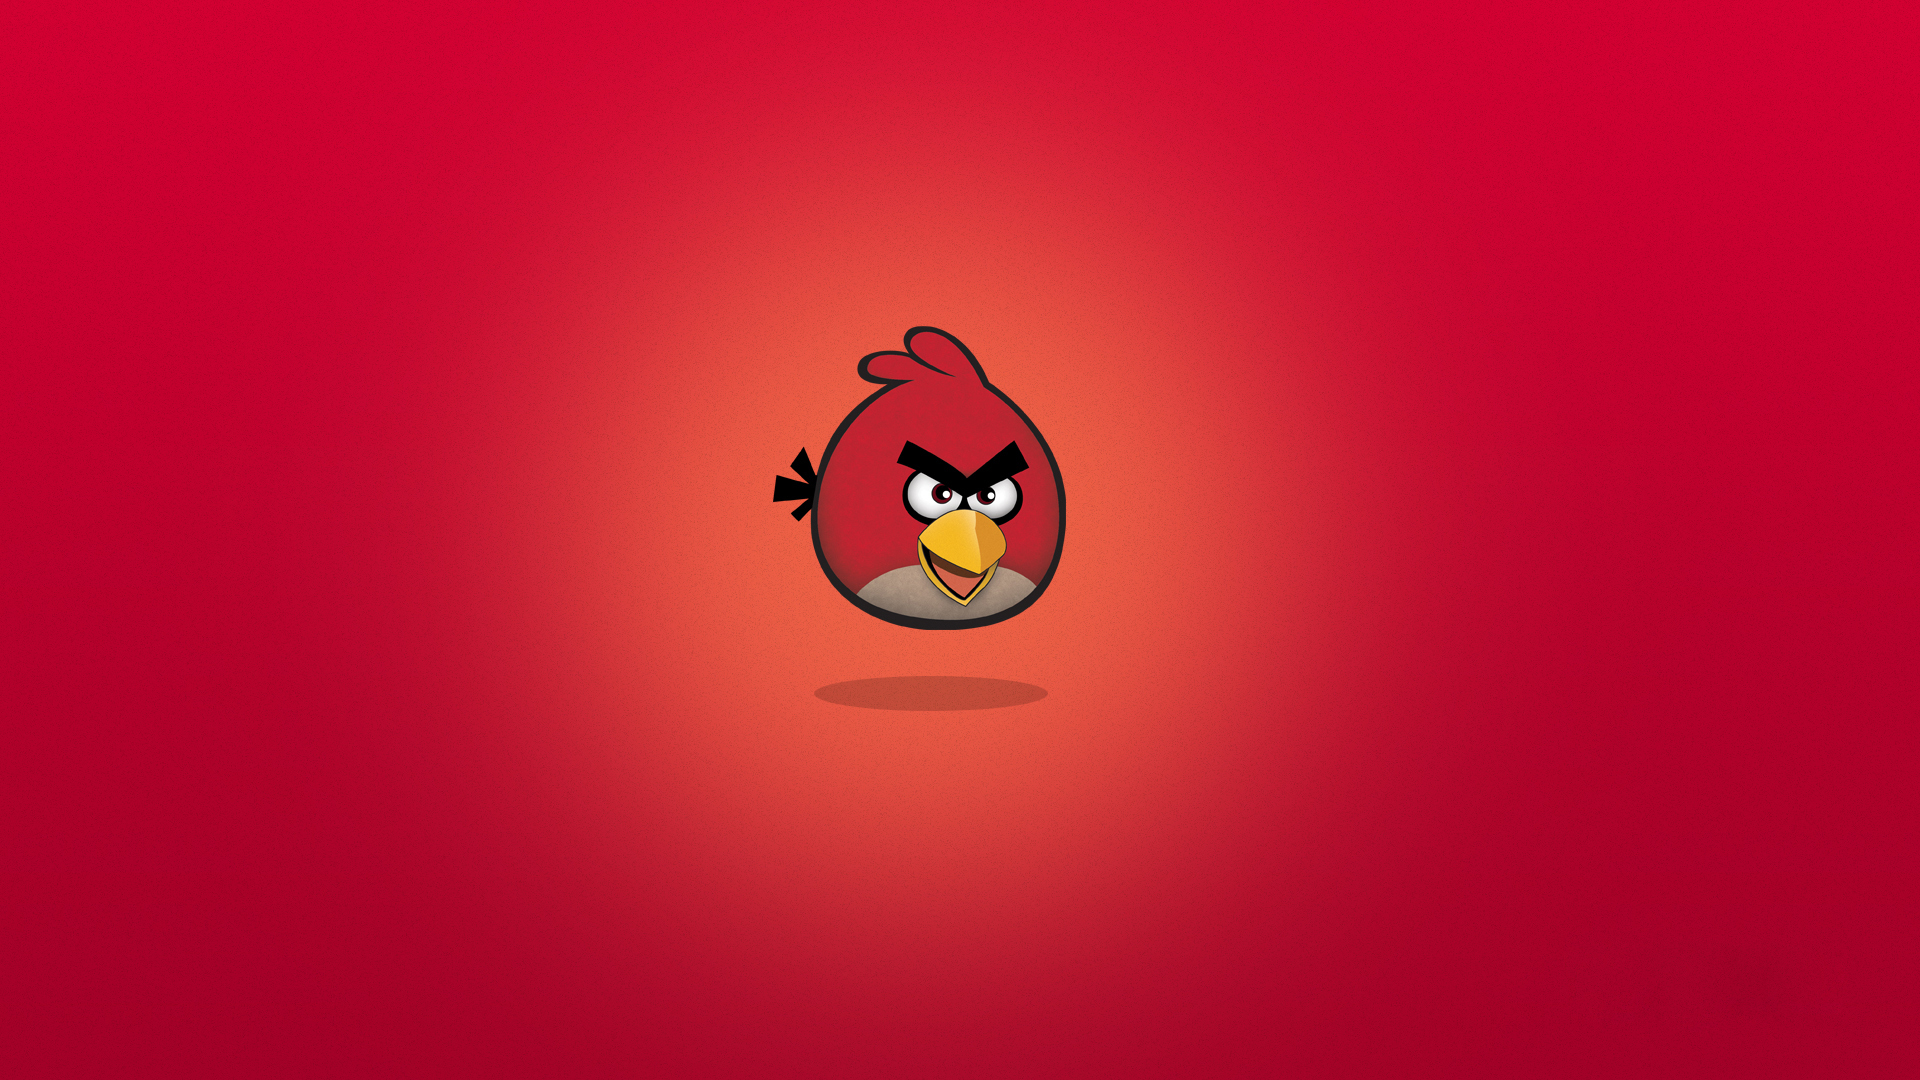 Angry Birds Wallpapers Desktop Wallpapers Angry Birds Wallpaper 7 1920x1080